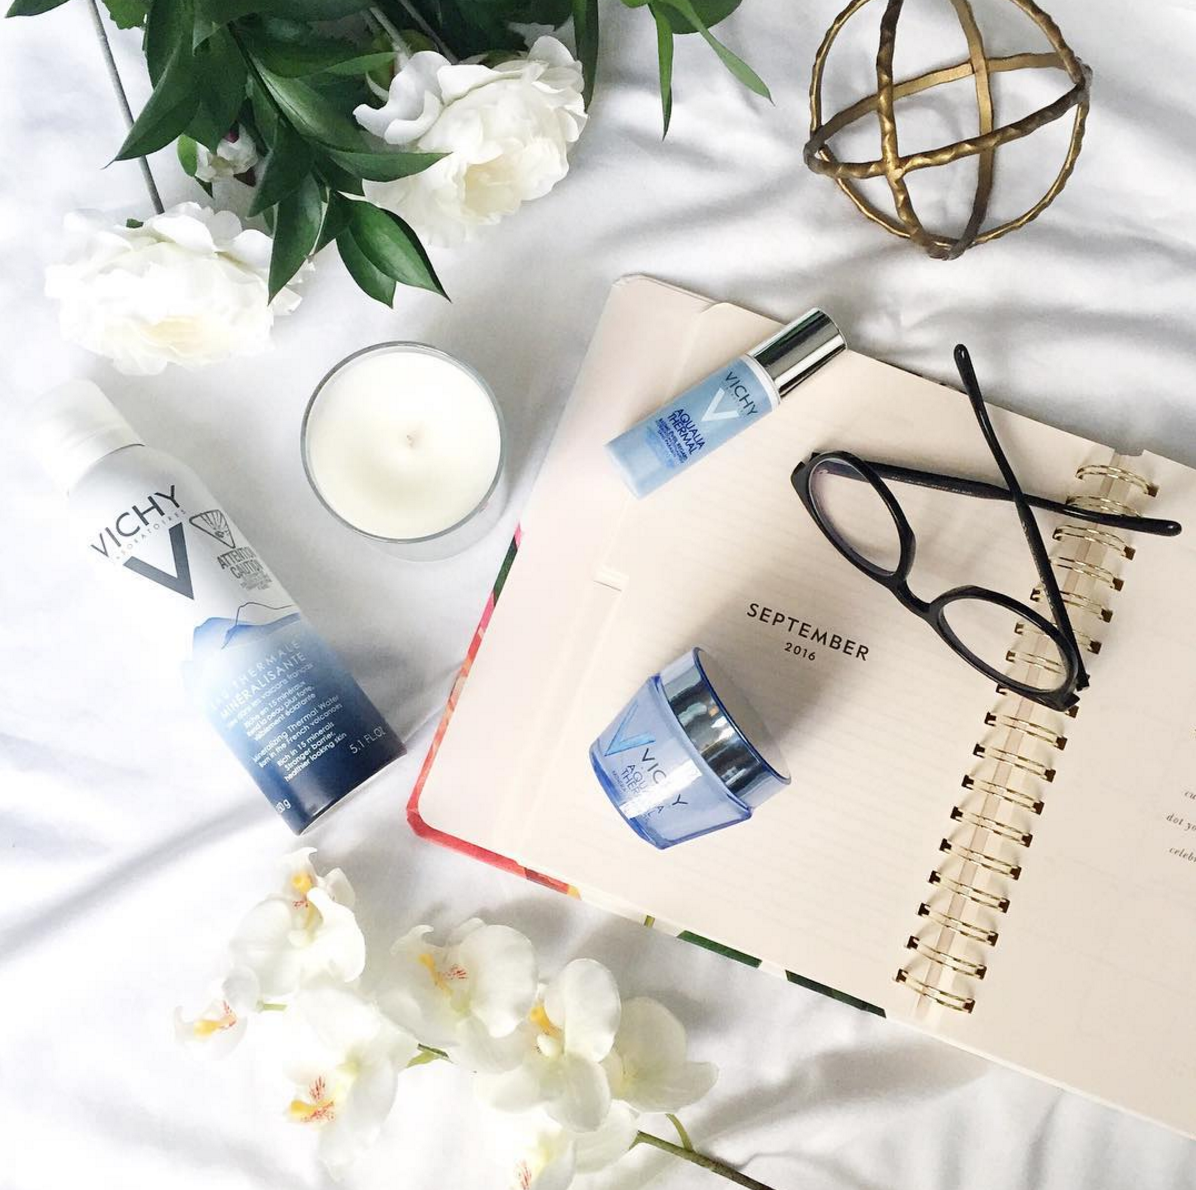 How to create an instagram flat lay - 10 tips from Toronto-based fashion blogger, Jackie Goldhar (@jackmise)